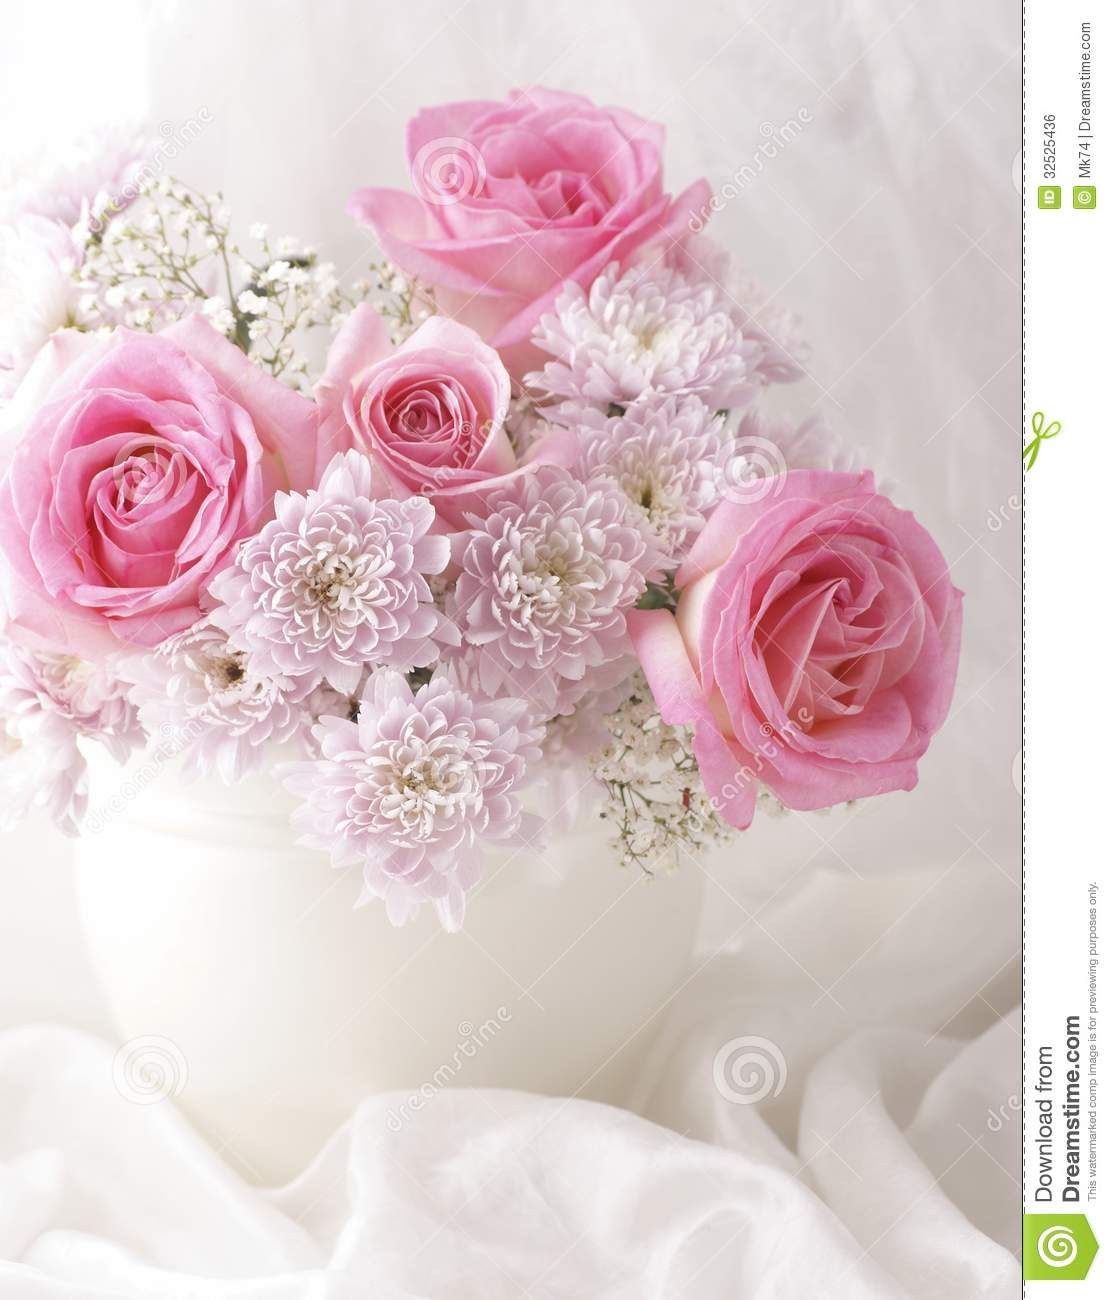 Clipart Roses Free